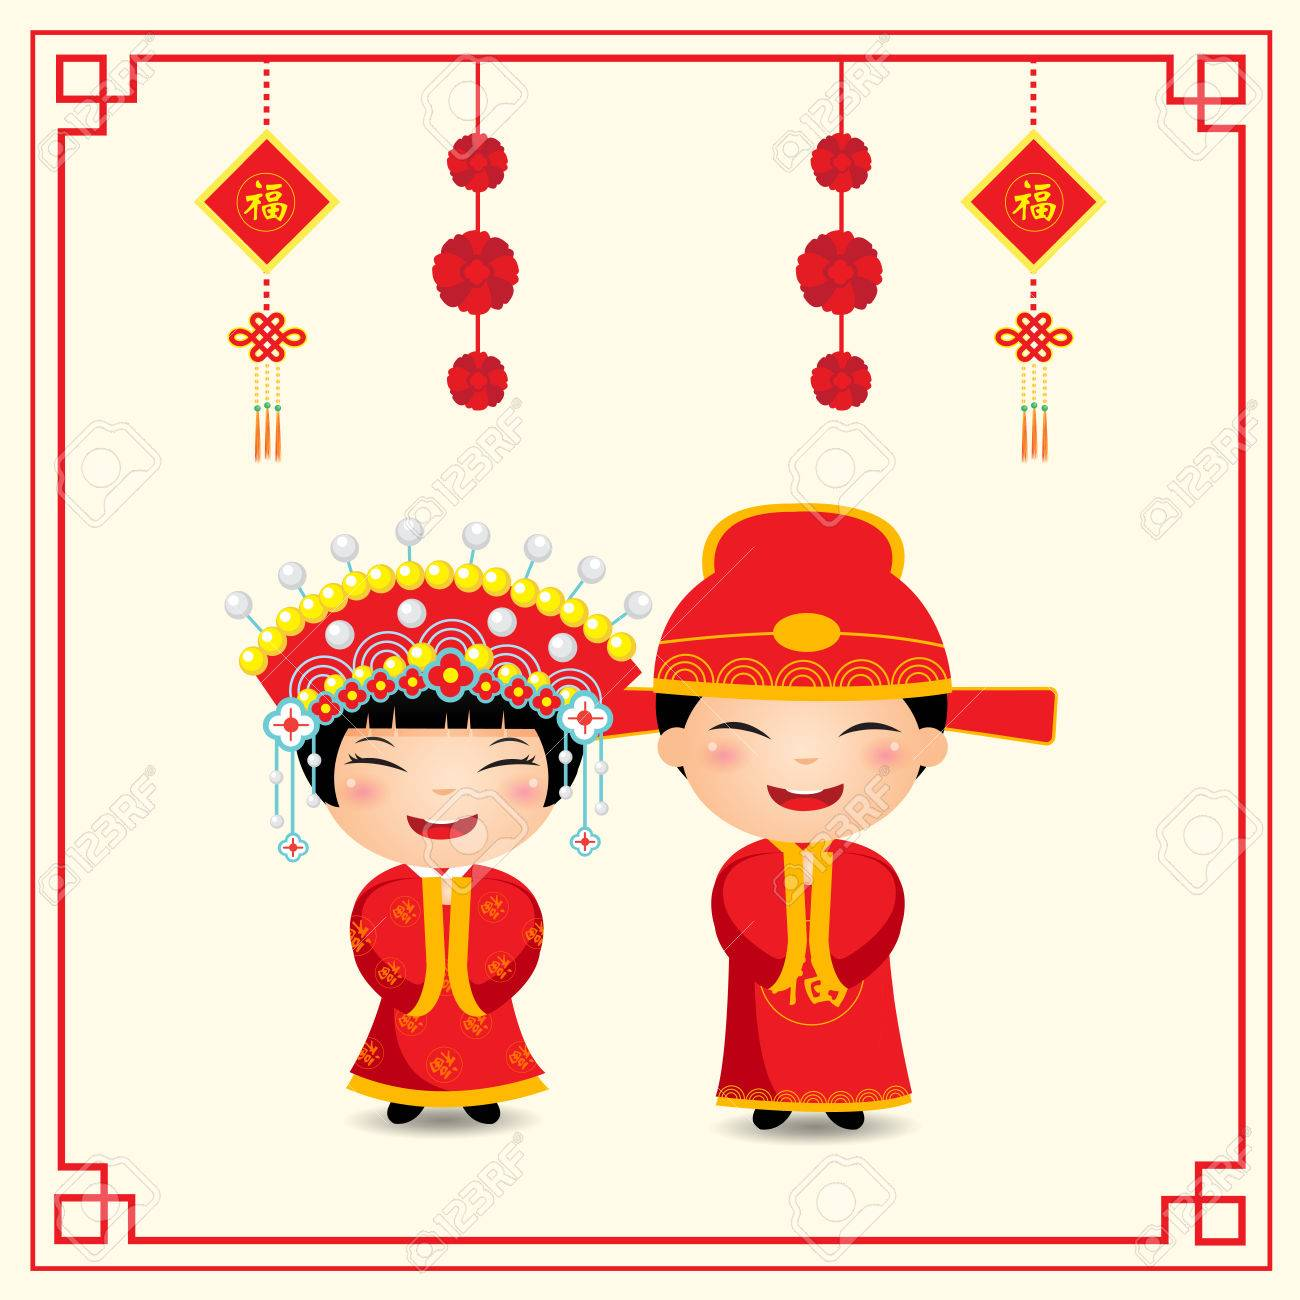 Cartoon Chinese Bride And Groom Wedding Invitation Card Template